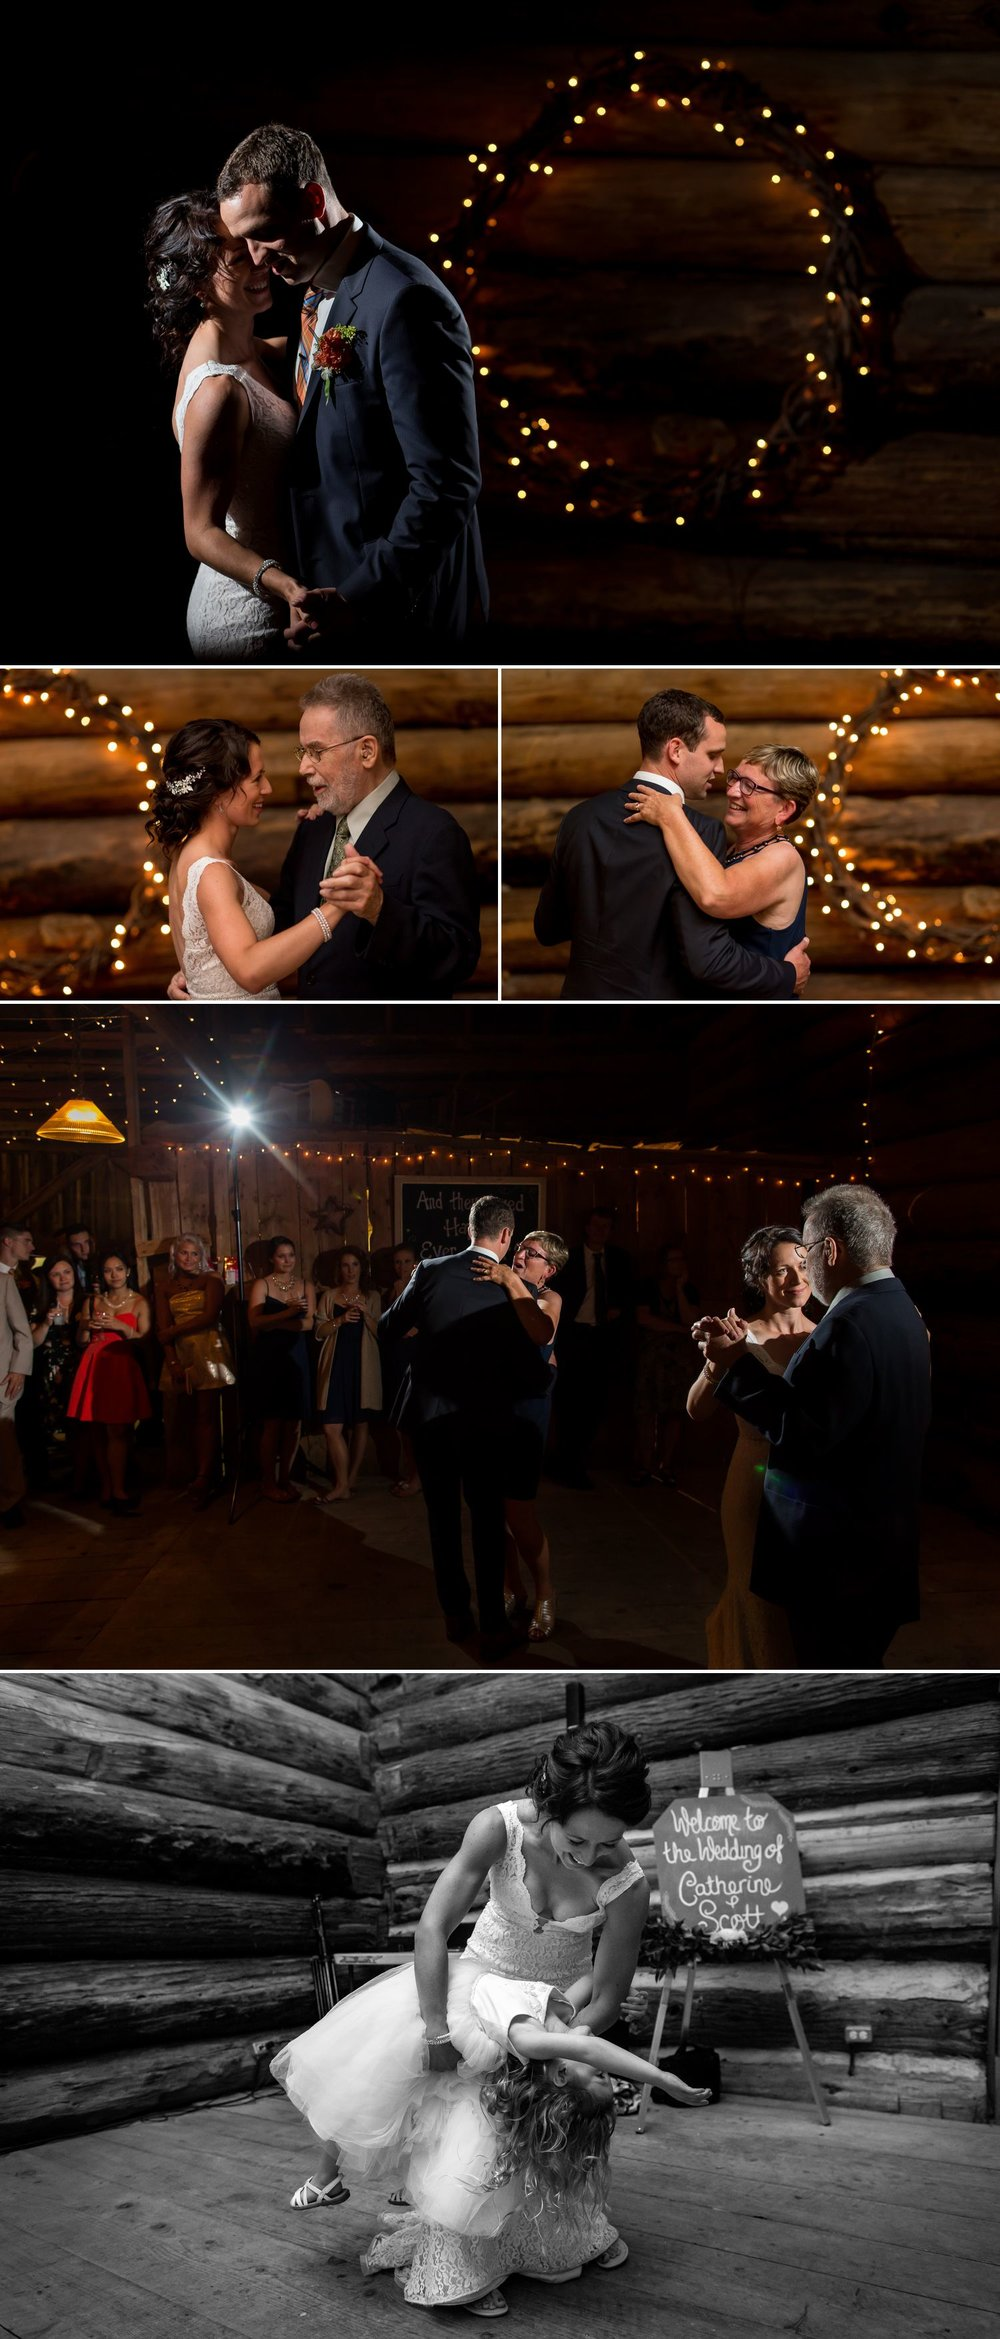 The couple and their parents during their first dances at their wedding reception at The Herb Garden